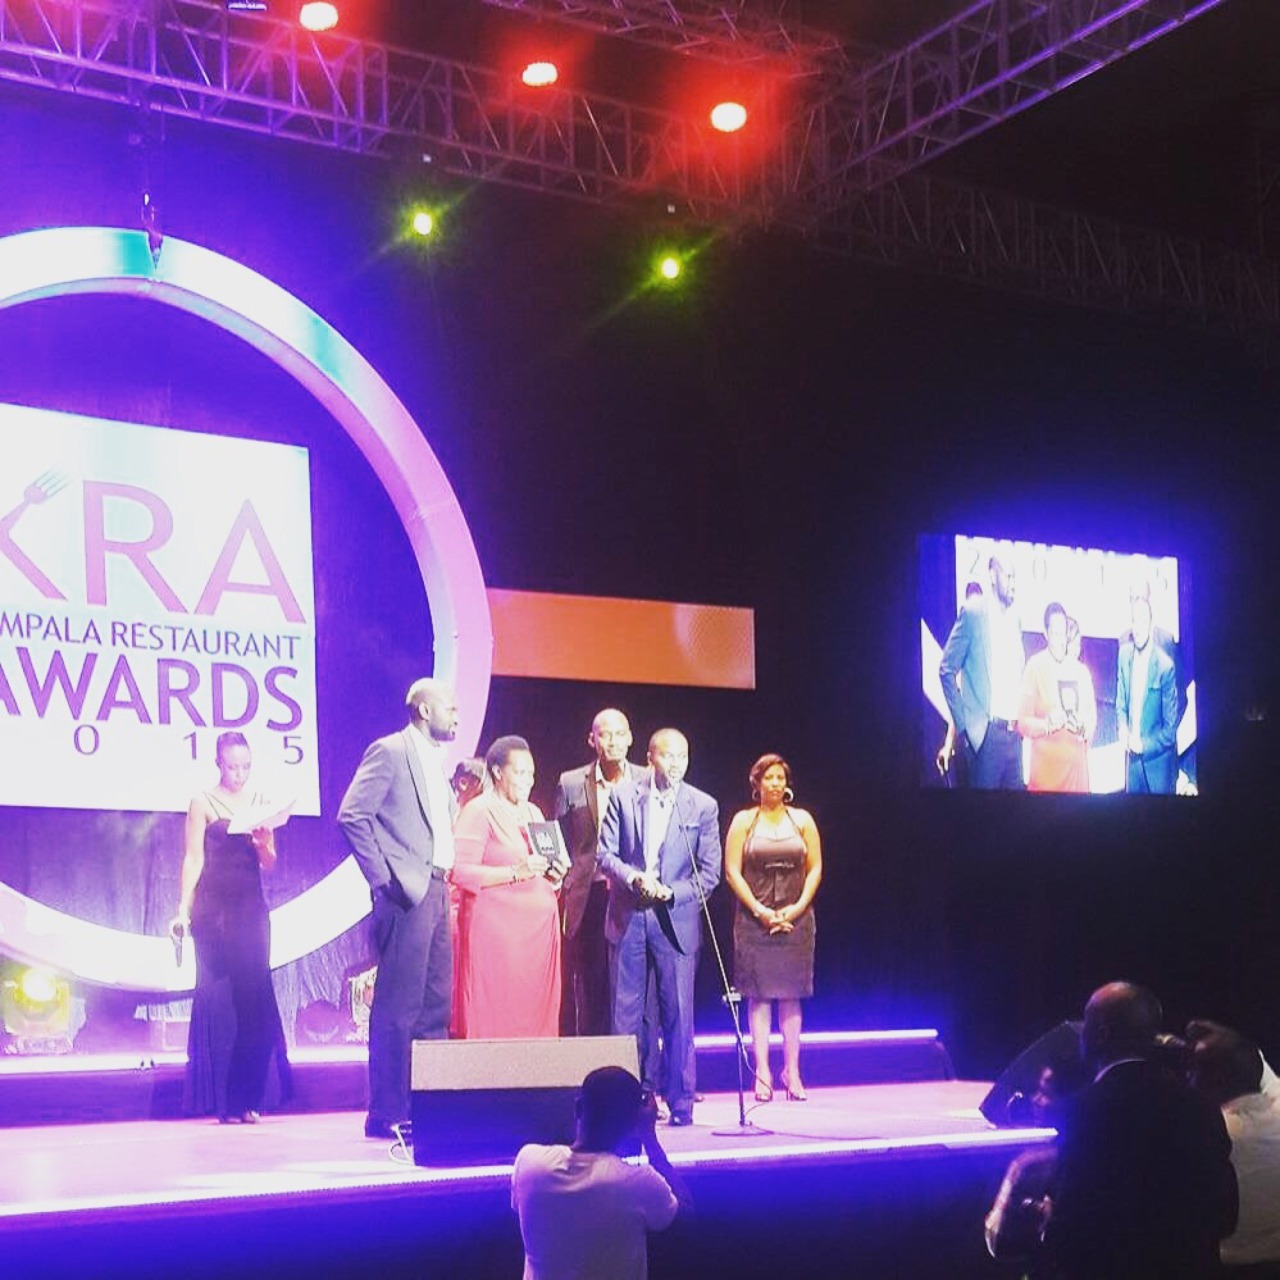 Humbled to be chosen by fans and judges to win the distinction of Kampala's Best Cafe at the 2015 Kampala Restaurant Awards. We promise to keep #brewingbetter every day. Thank you all for supporting us!